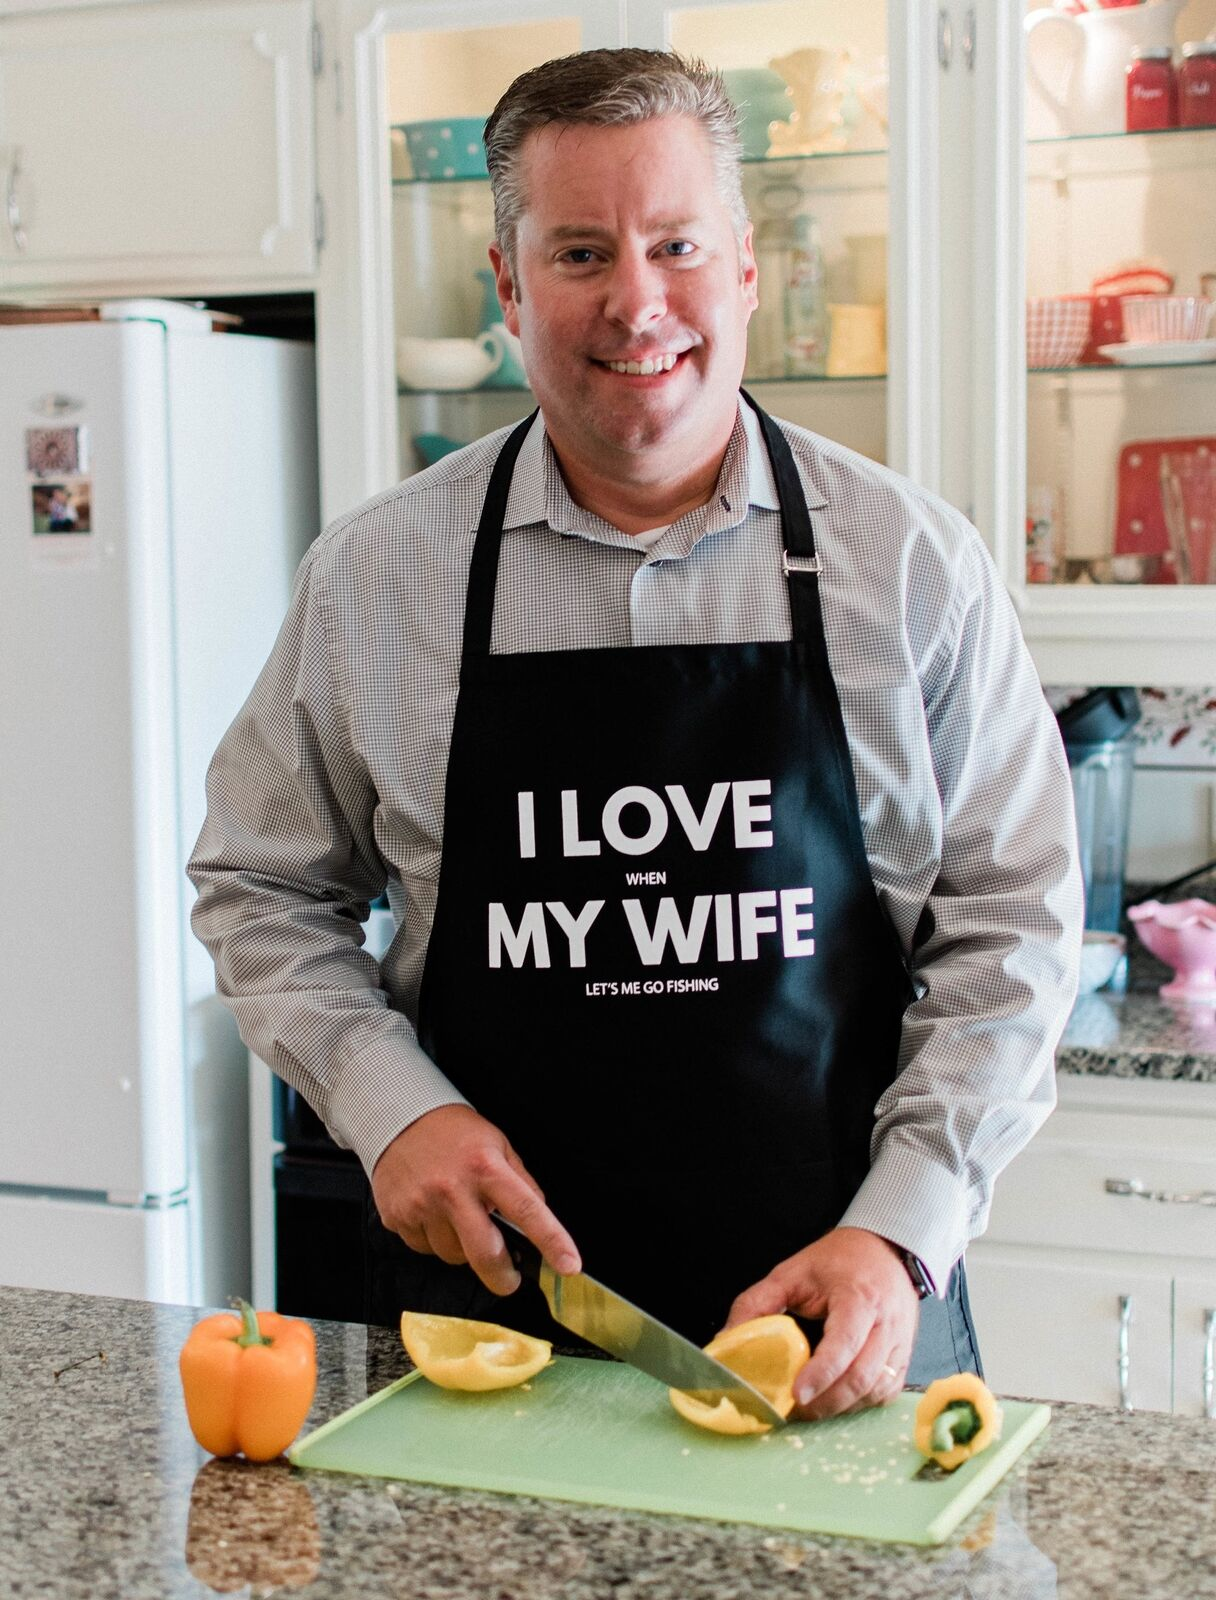 I Love My Wife Apron for Grilling, Funny Fishing Gift for Me